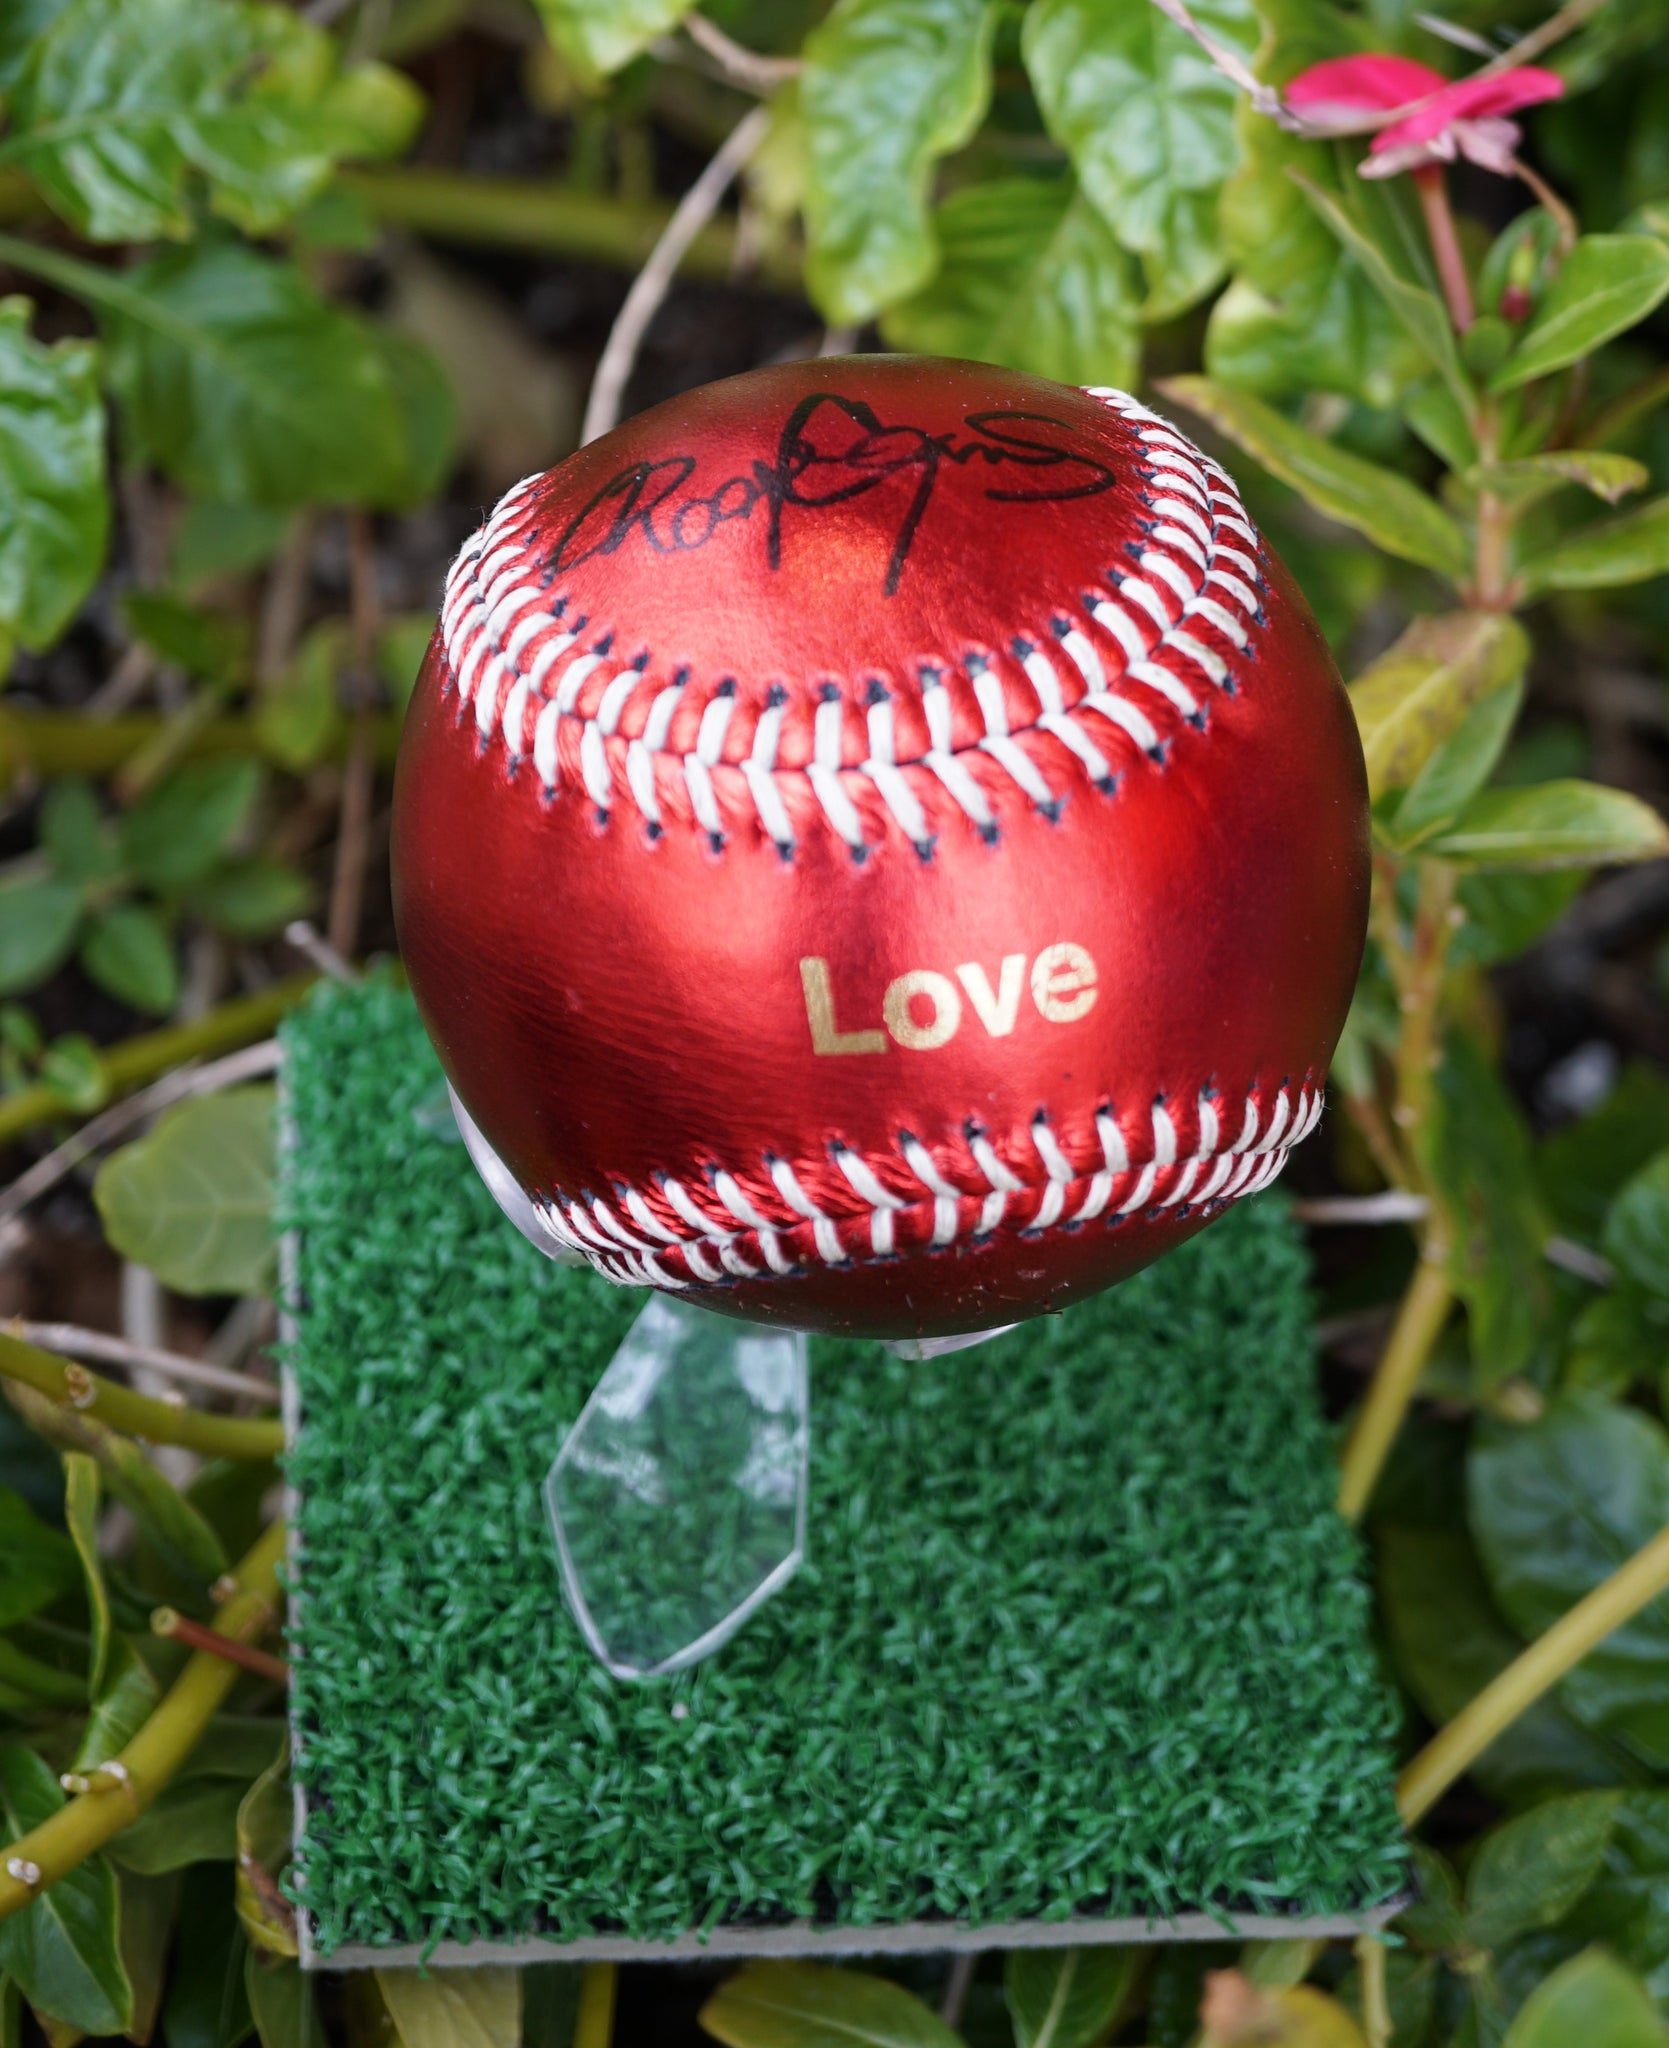 AUTOGRAPHED ROGER CLEMENS RED LOVE BASEBALL